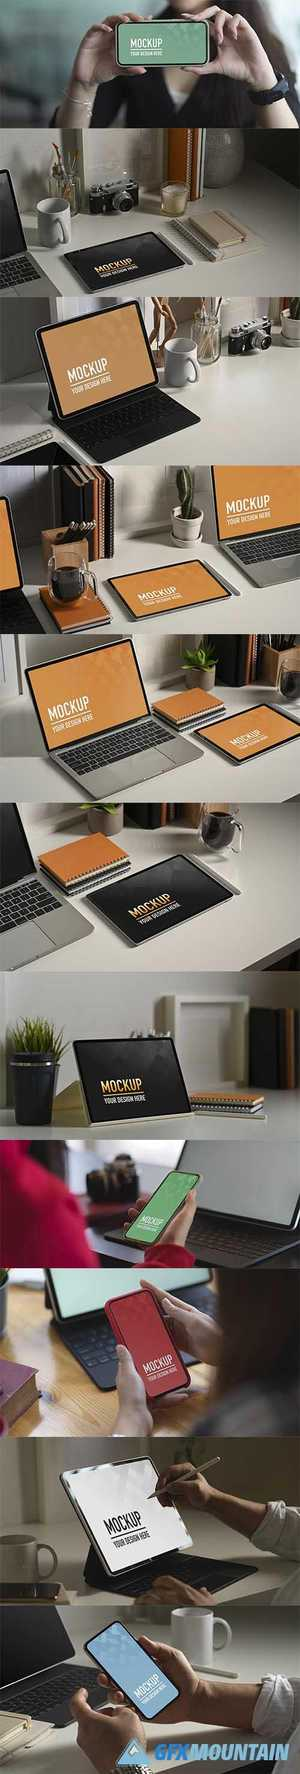 Smartphone laptop and tablete mockup